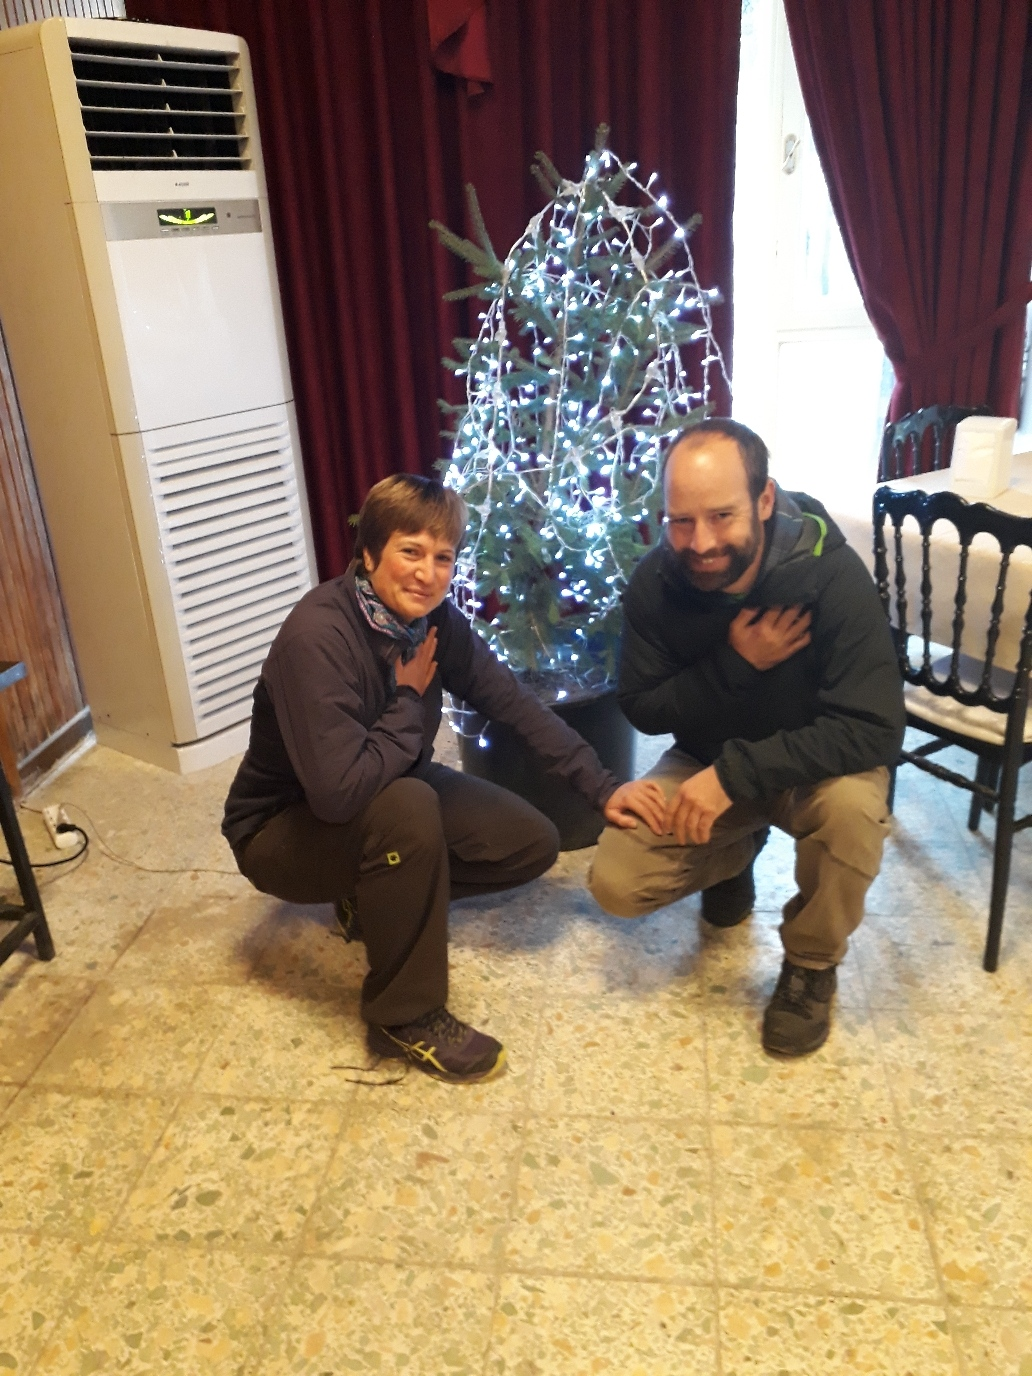 Teşekkür ederiz! We are so happy that this christmastree still has roots to stay alive